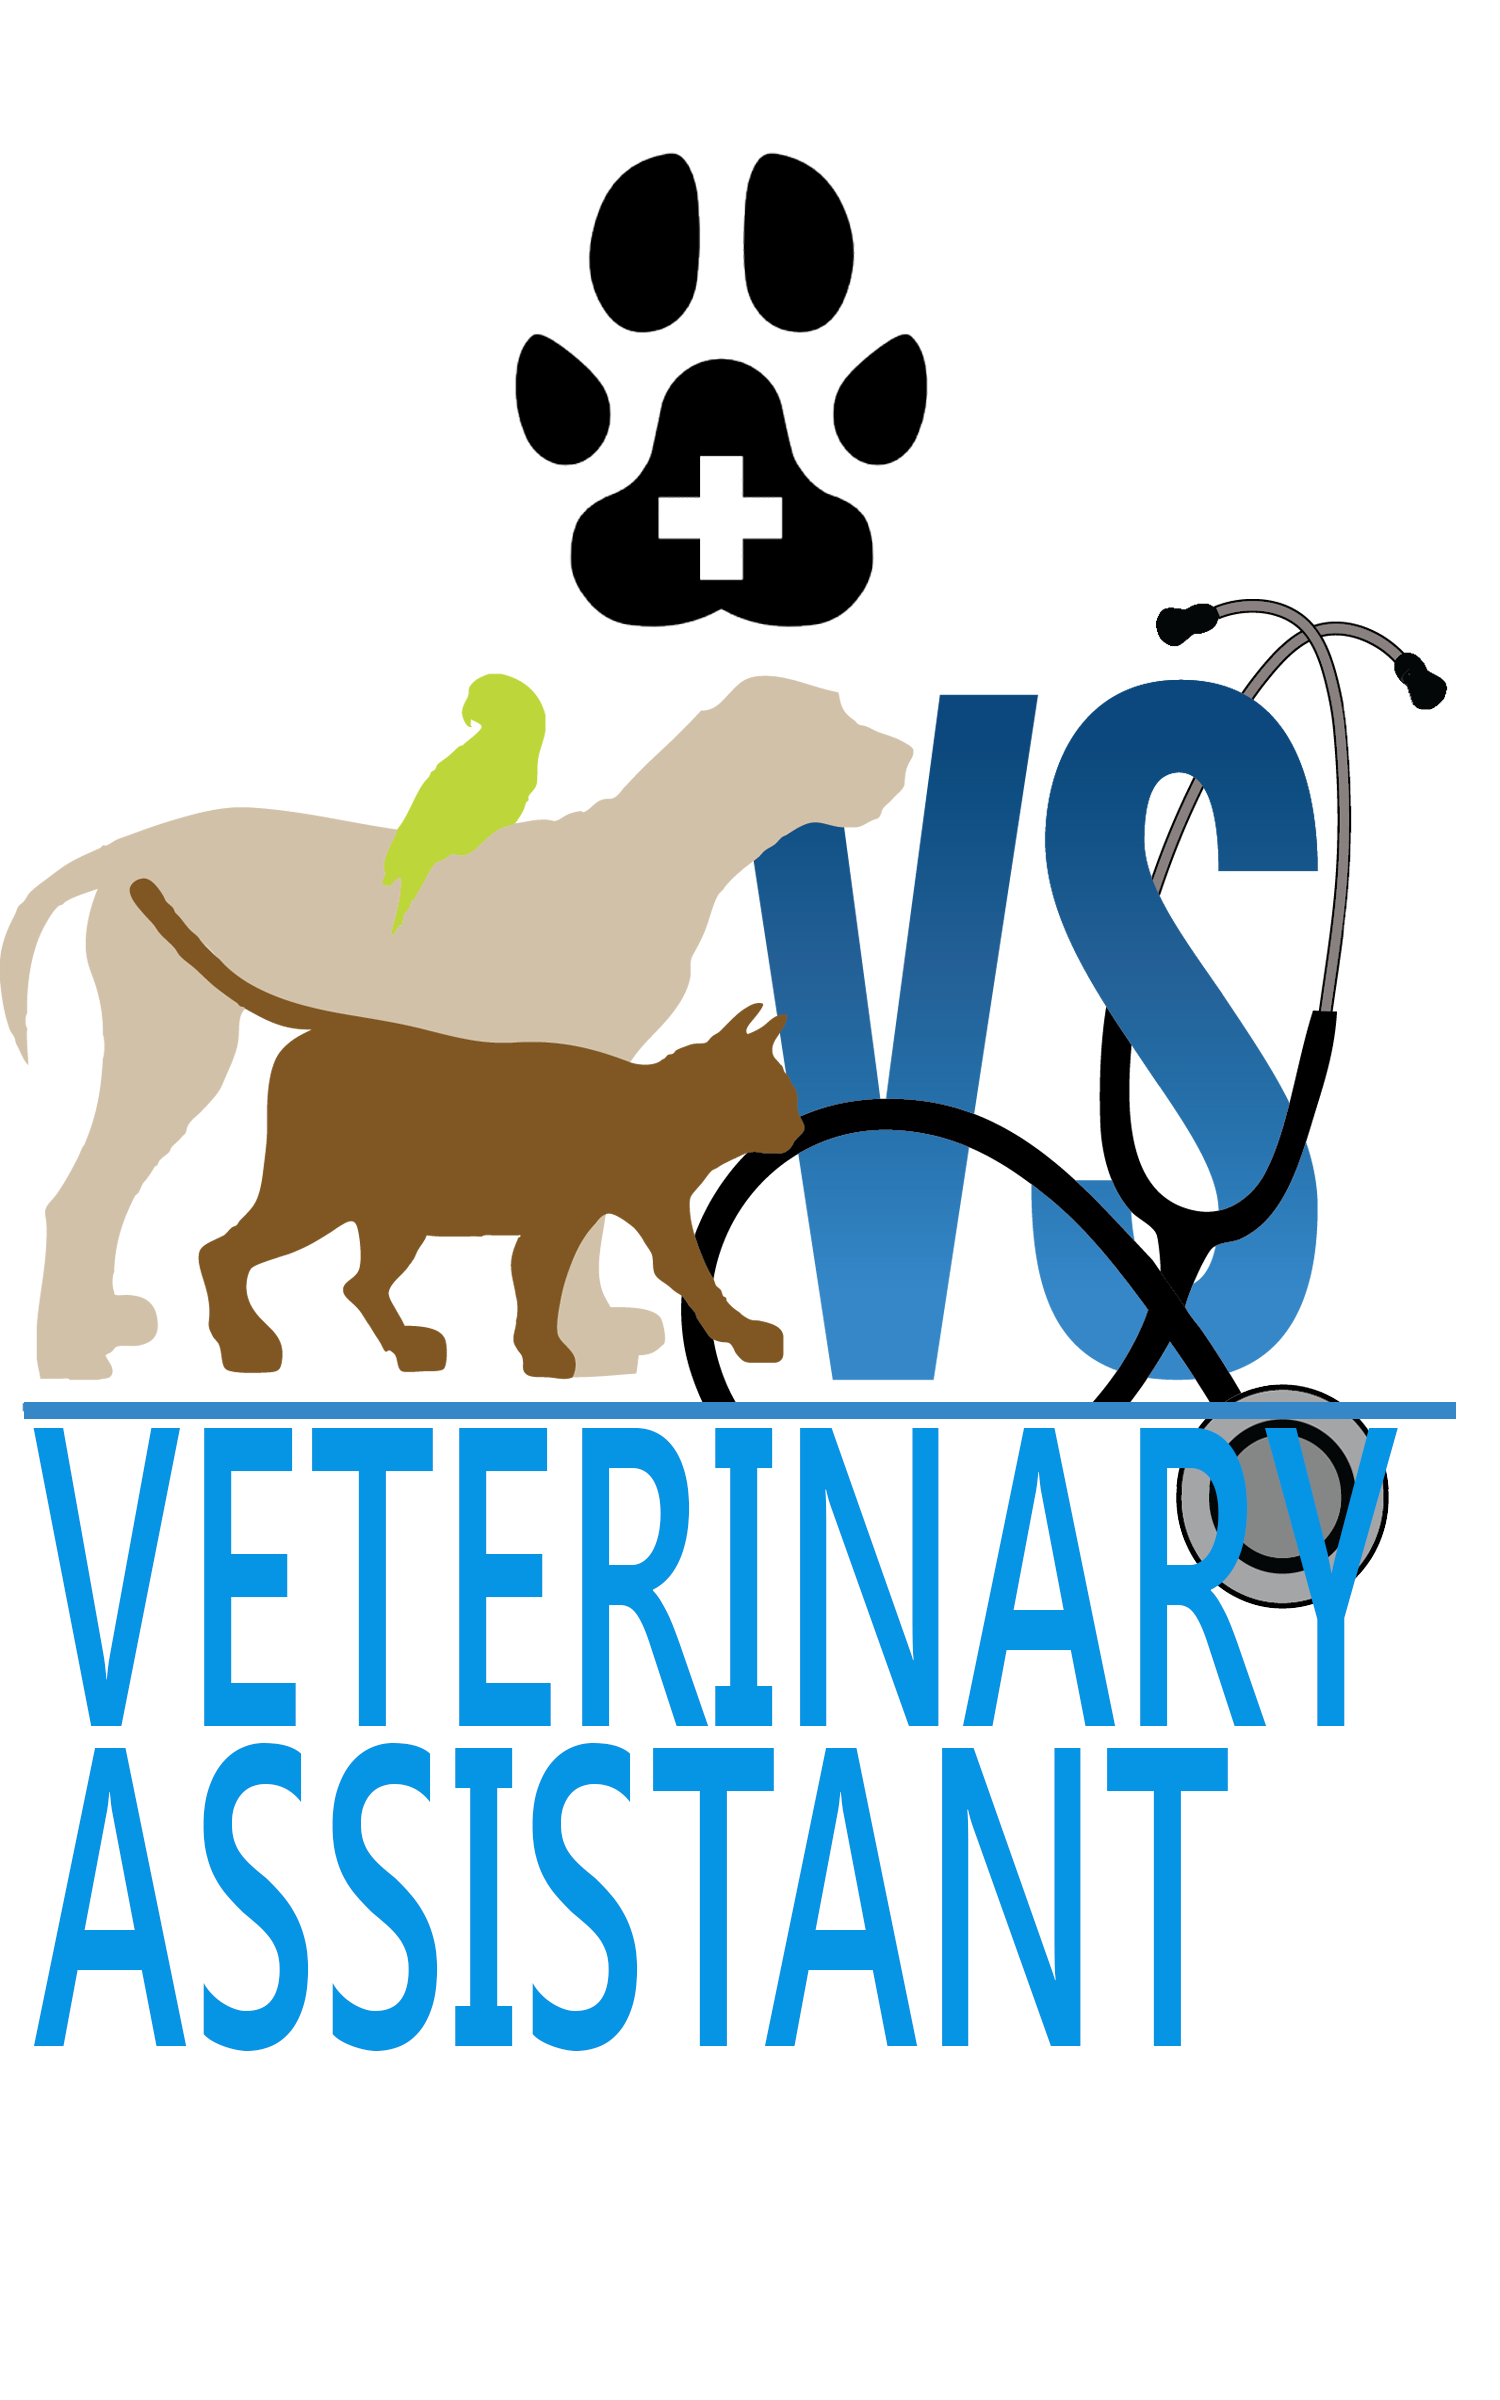 Vet Assistant PNG Transparent Vet Assistant.PNG Images.